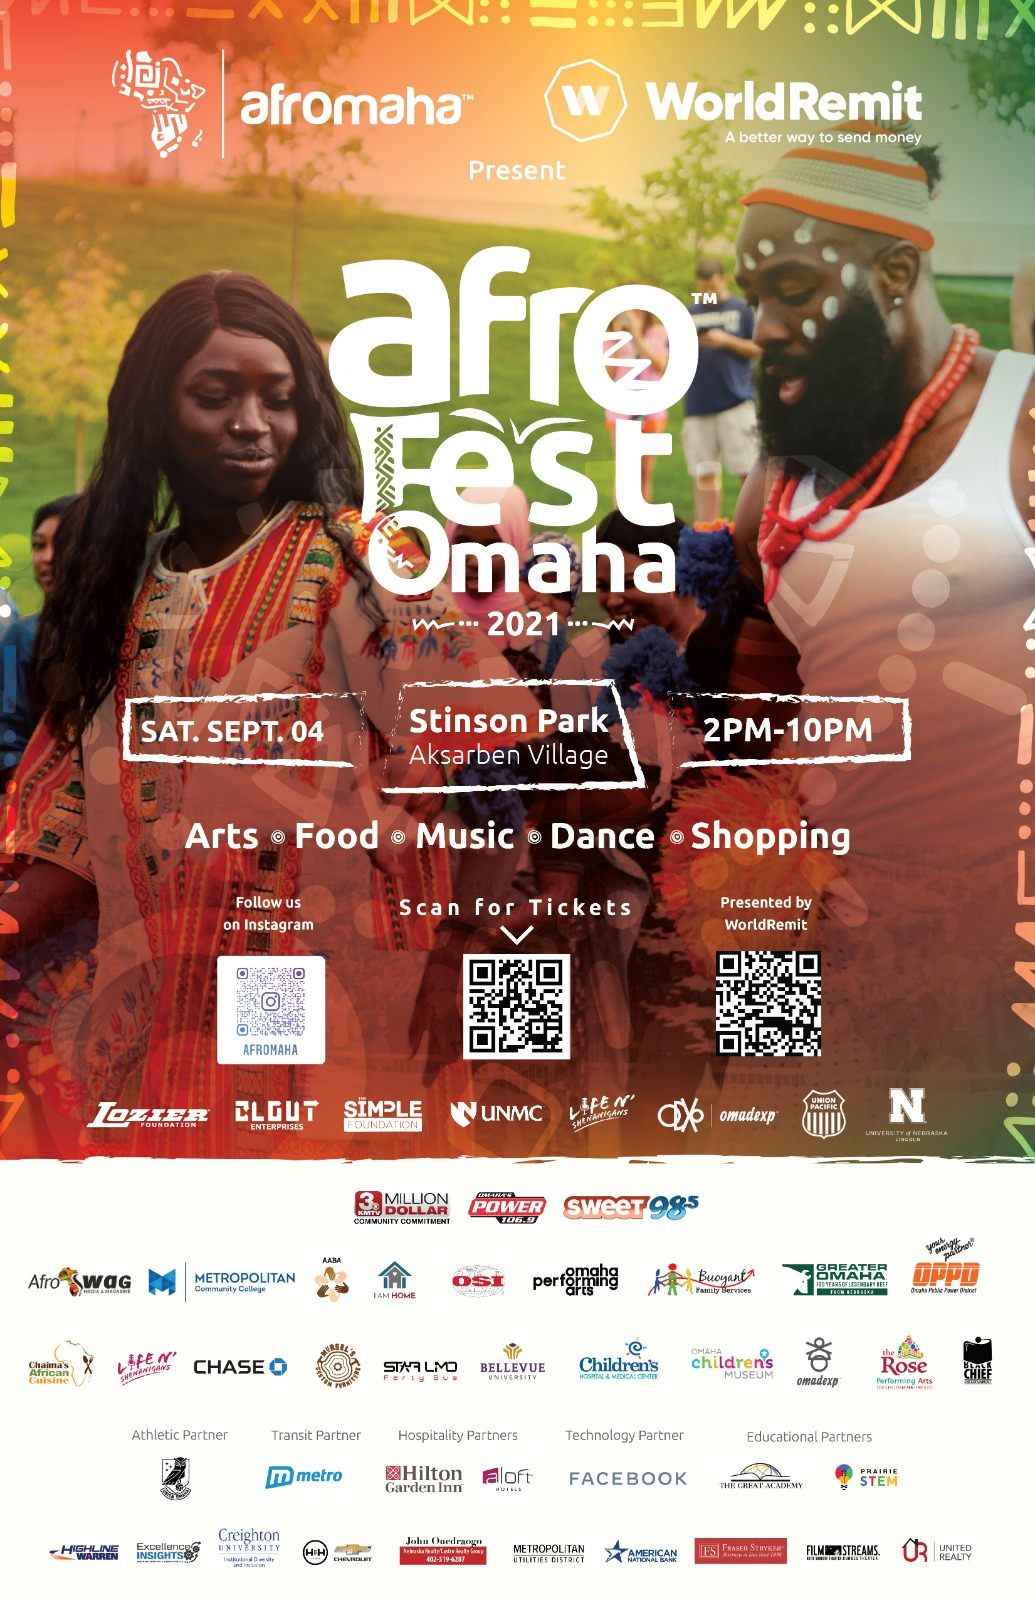 Afromaha and WorldRemit Present Afro Fest Omaha